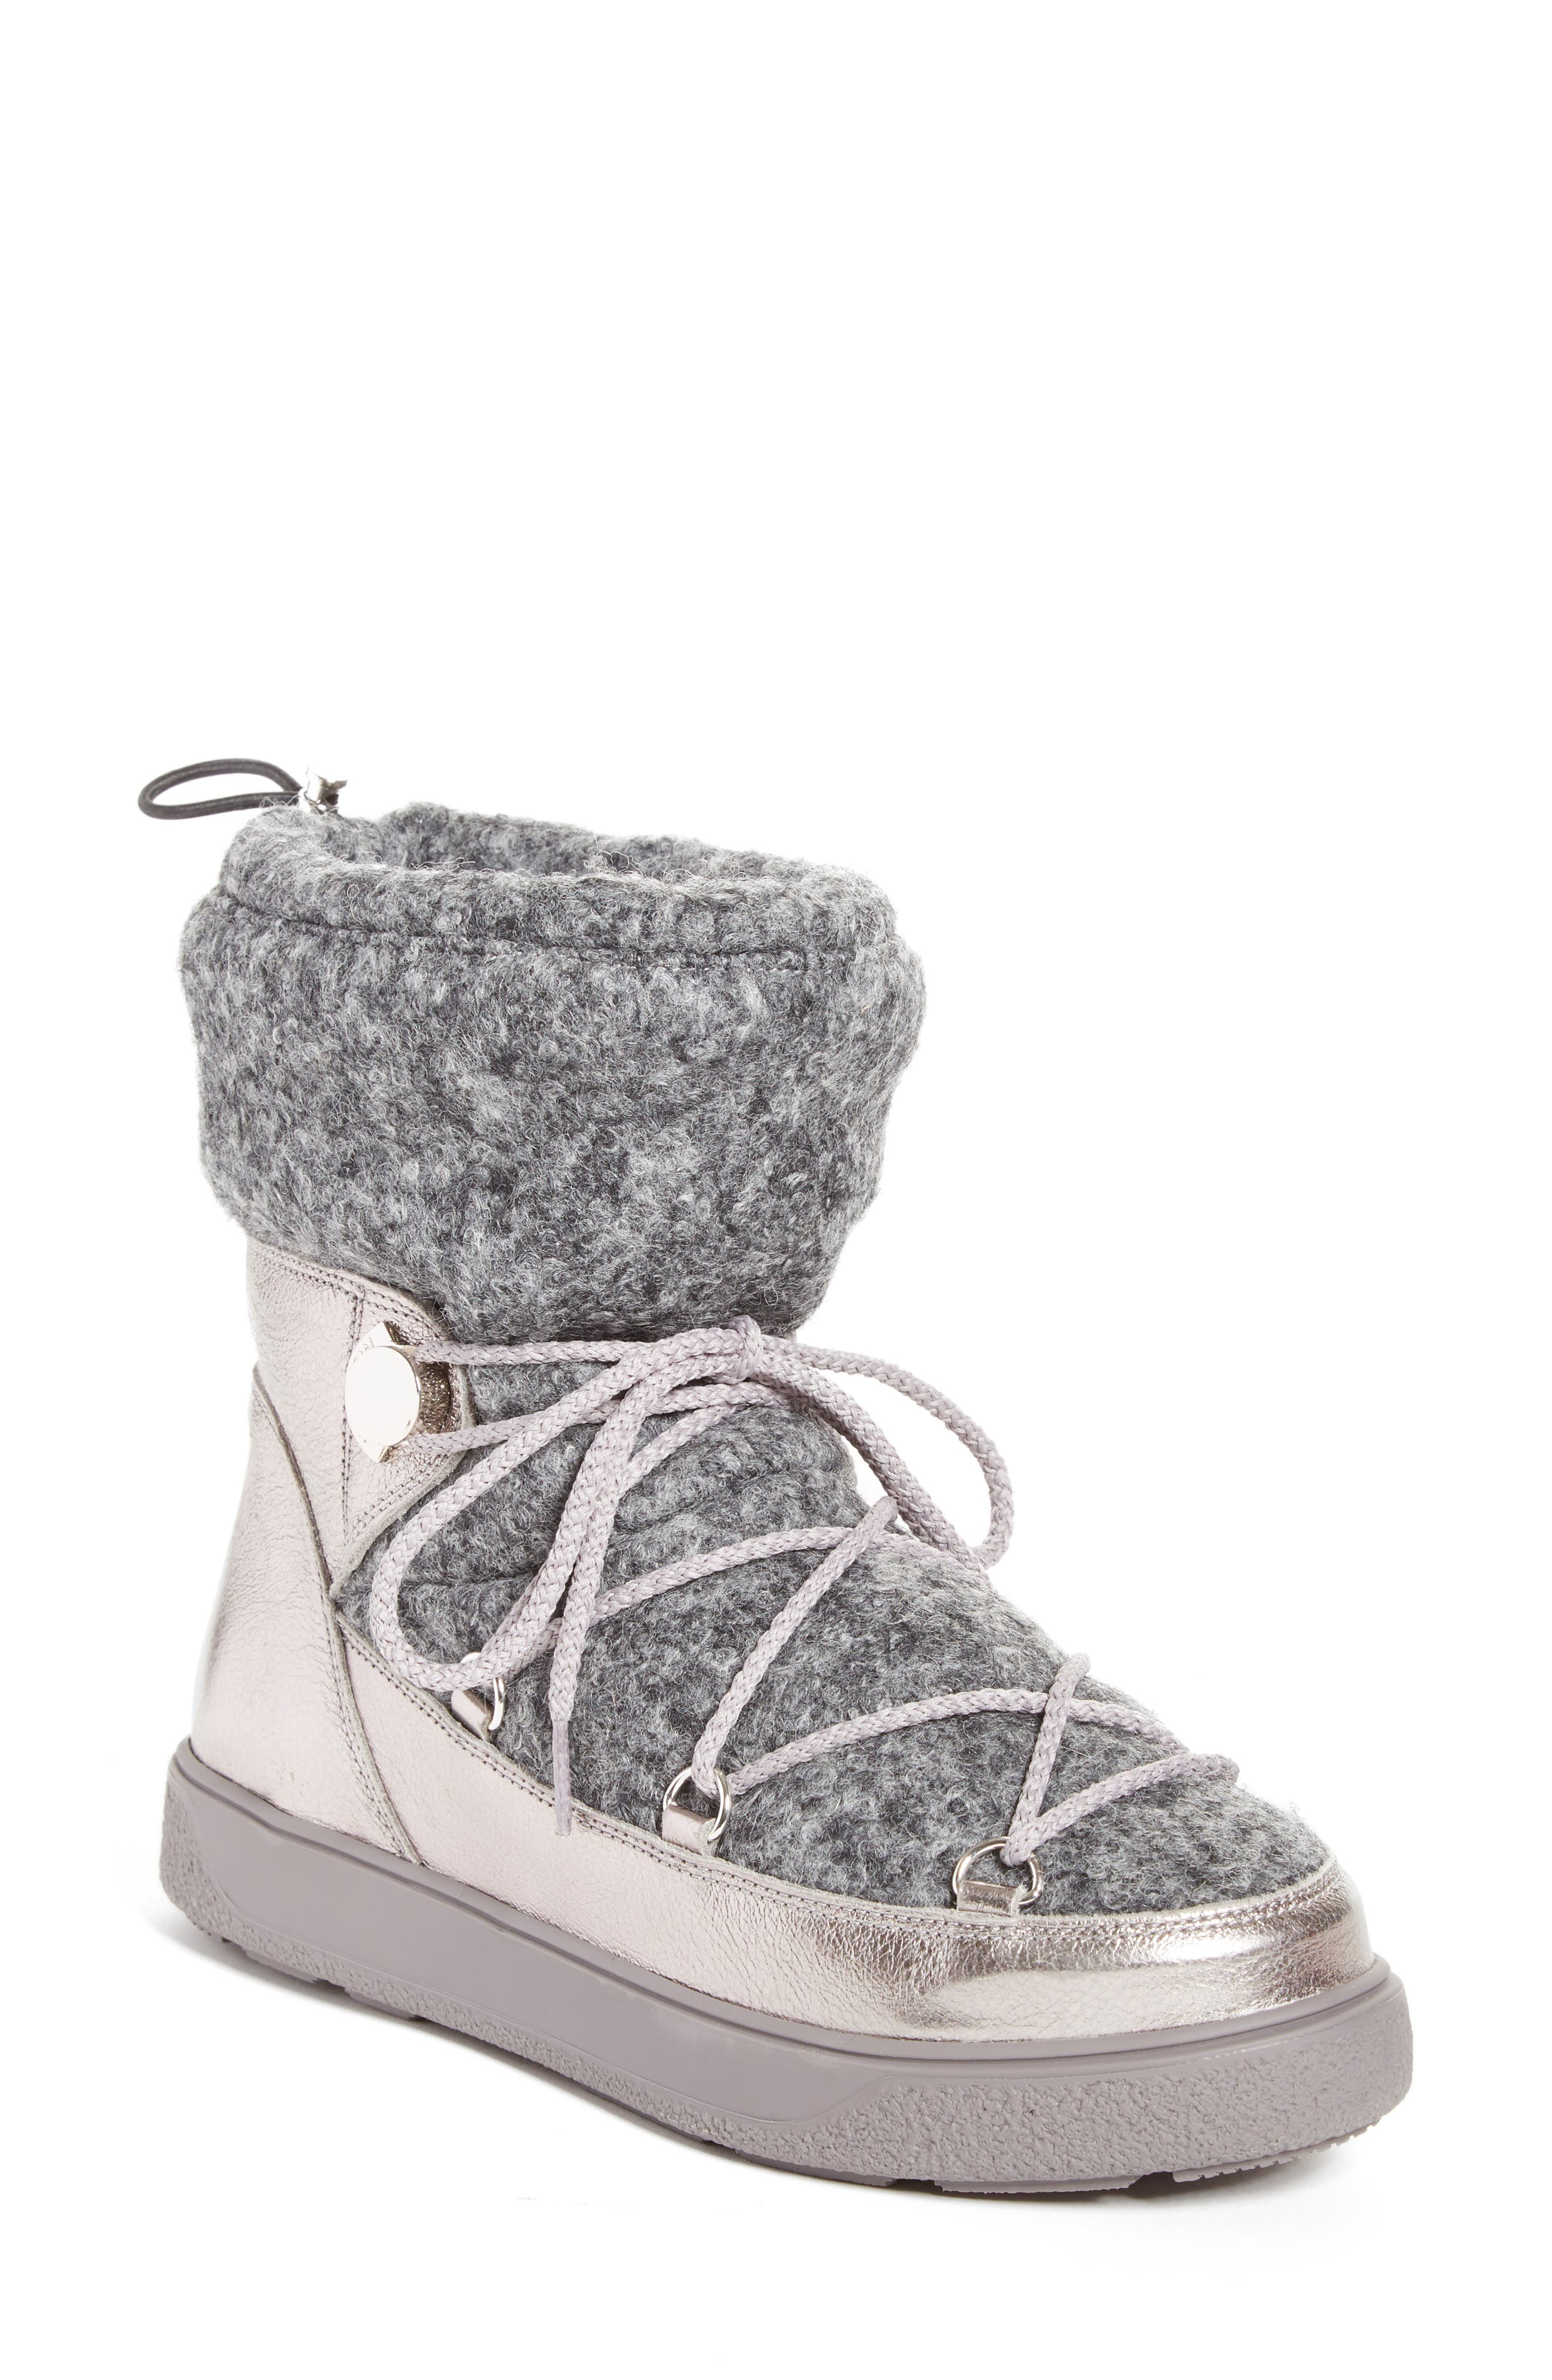 Ynnaf Boiled Wool Lined Snow Boot,                         Main,                         color, Silver